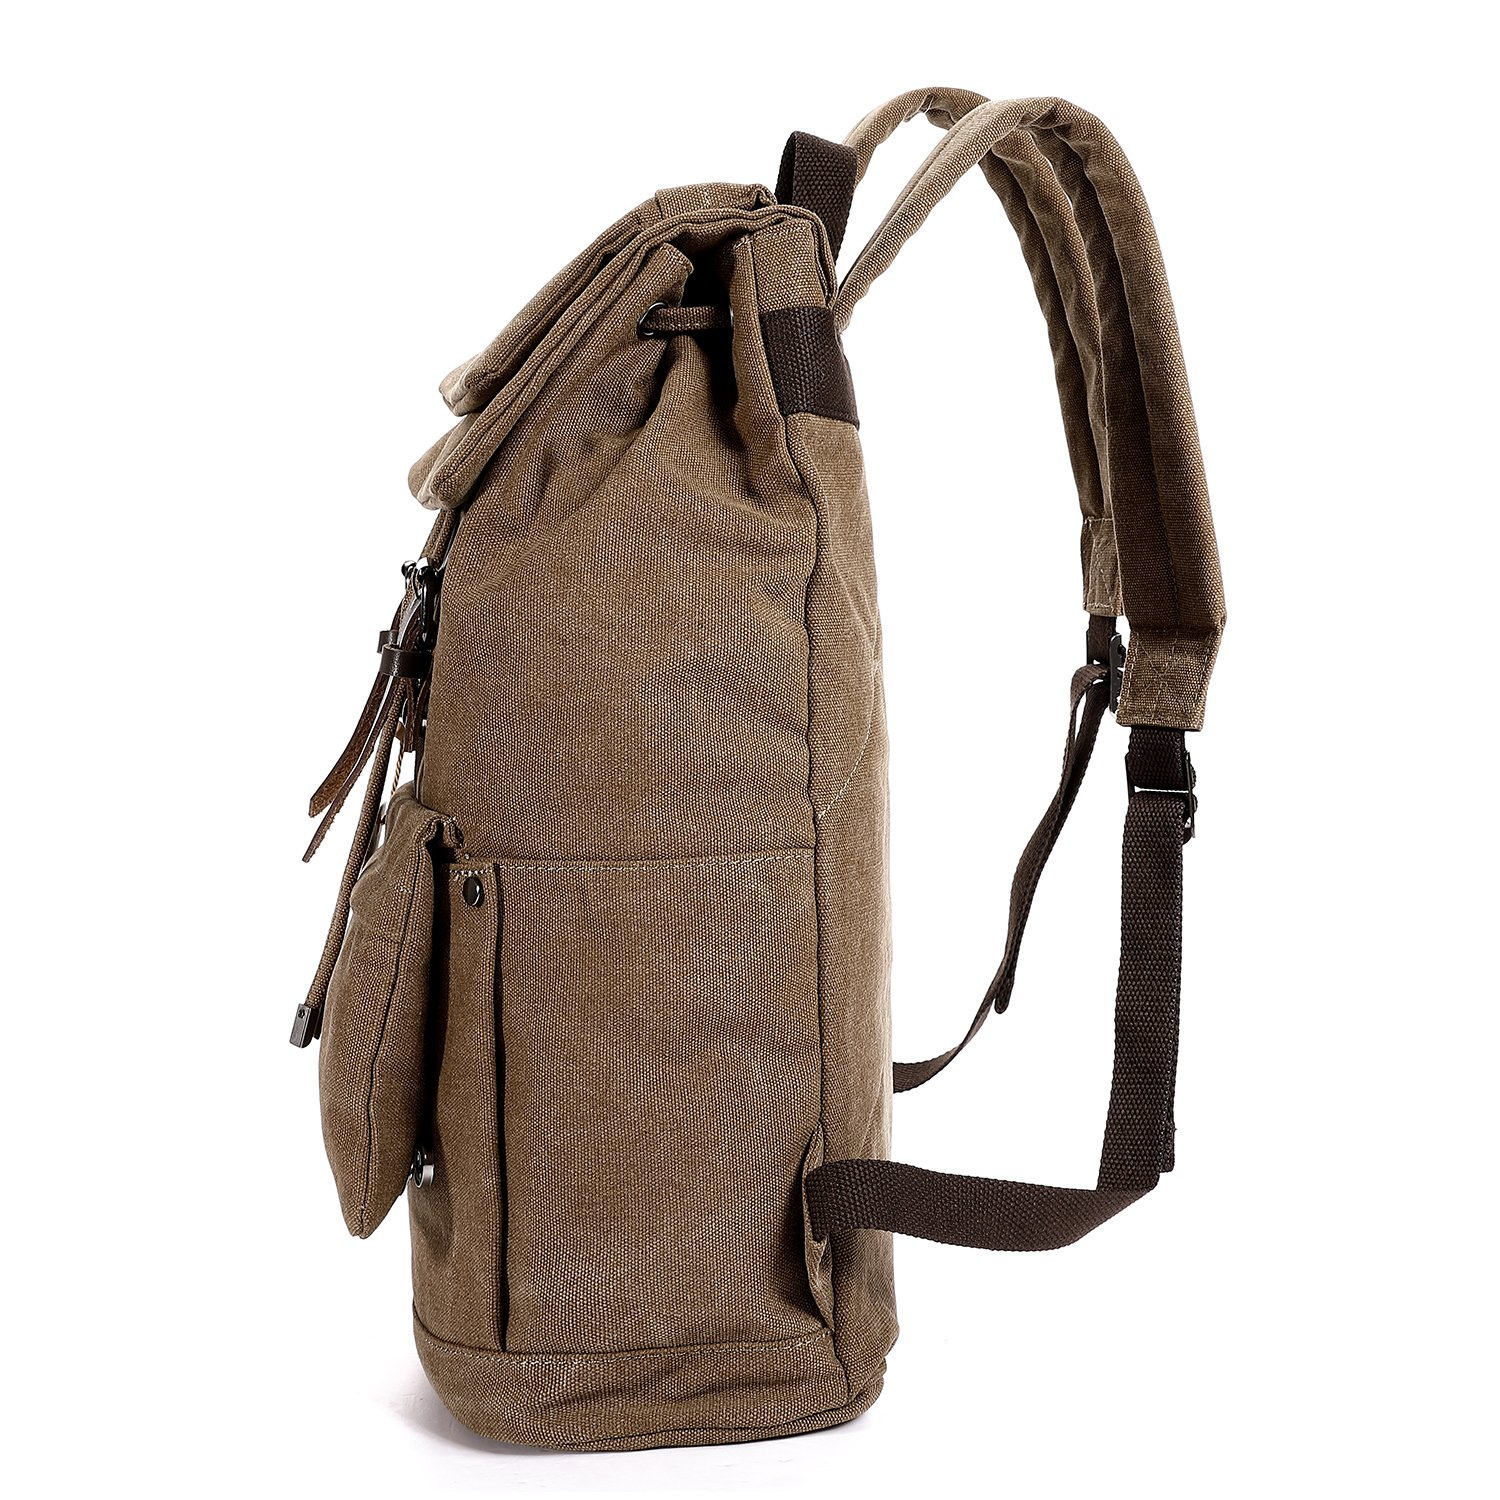 Vintage Canvas Backpack, Fresion Travel Rucksack School Bag Stylish Satchel Computer Laptop Bags fits up 14'' for Boys and Girls, Brown